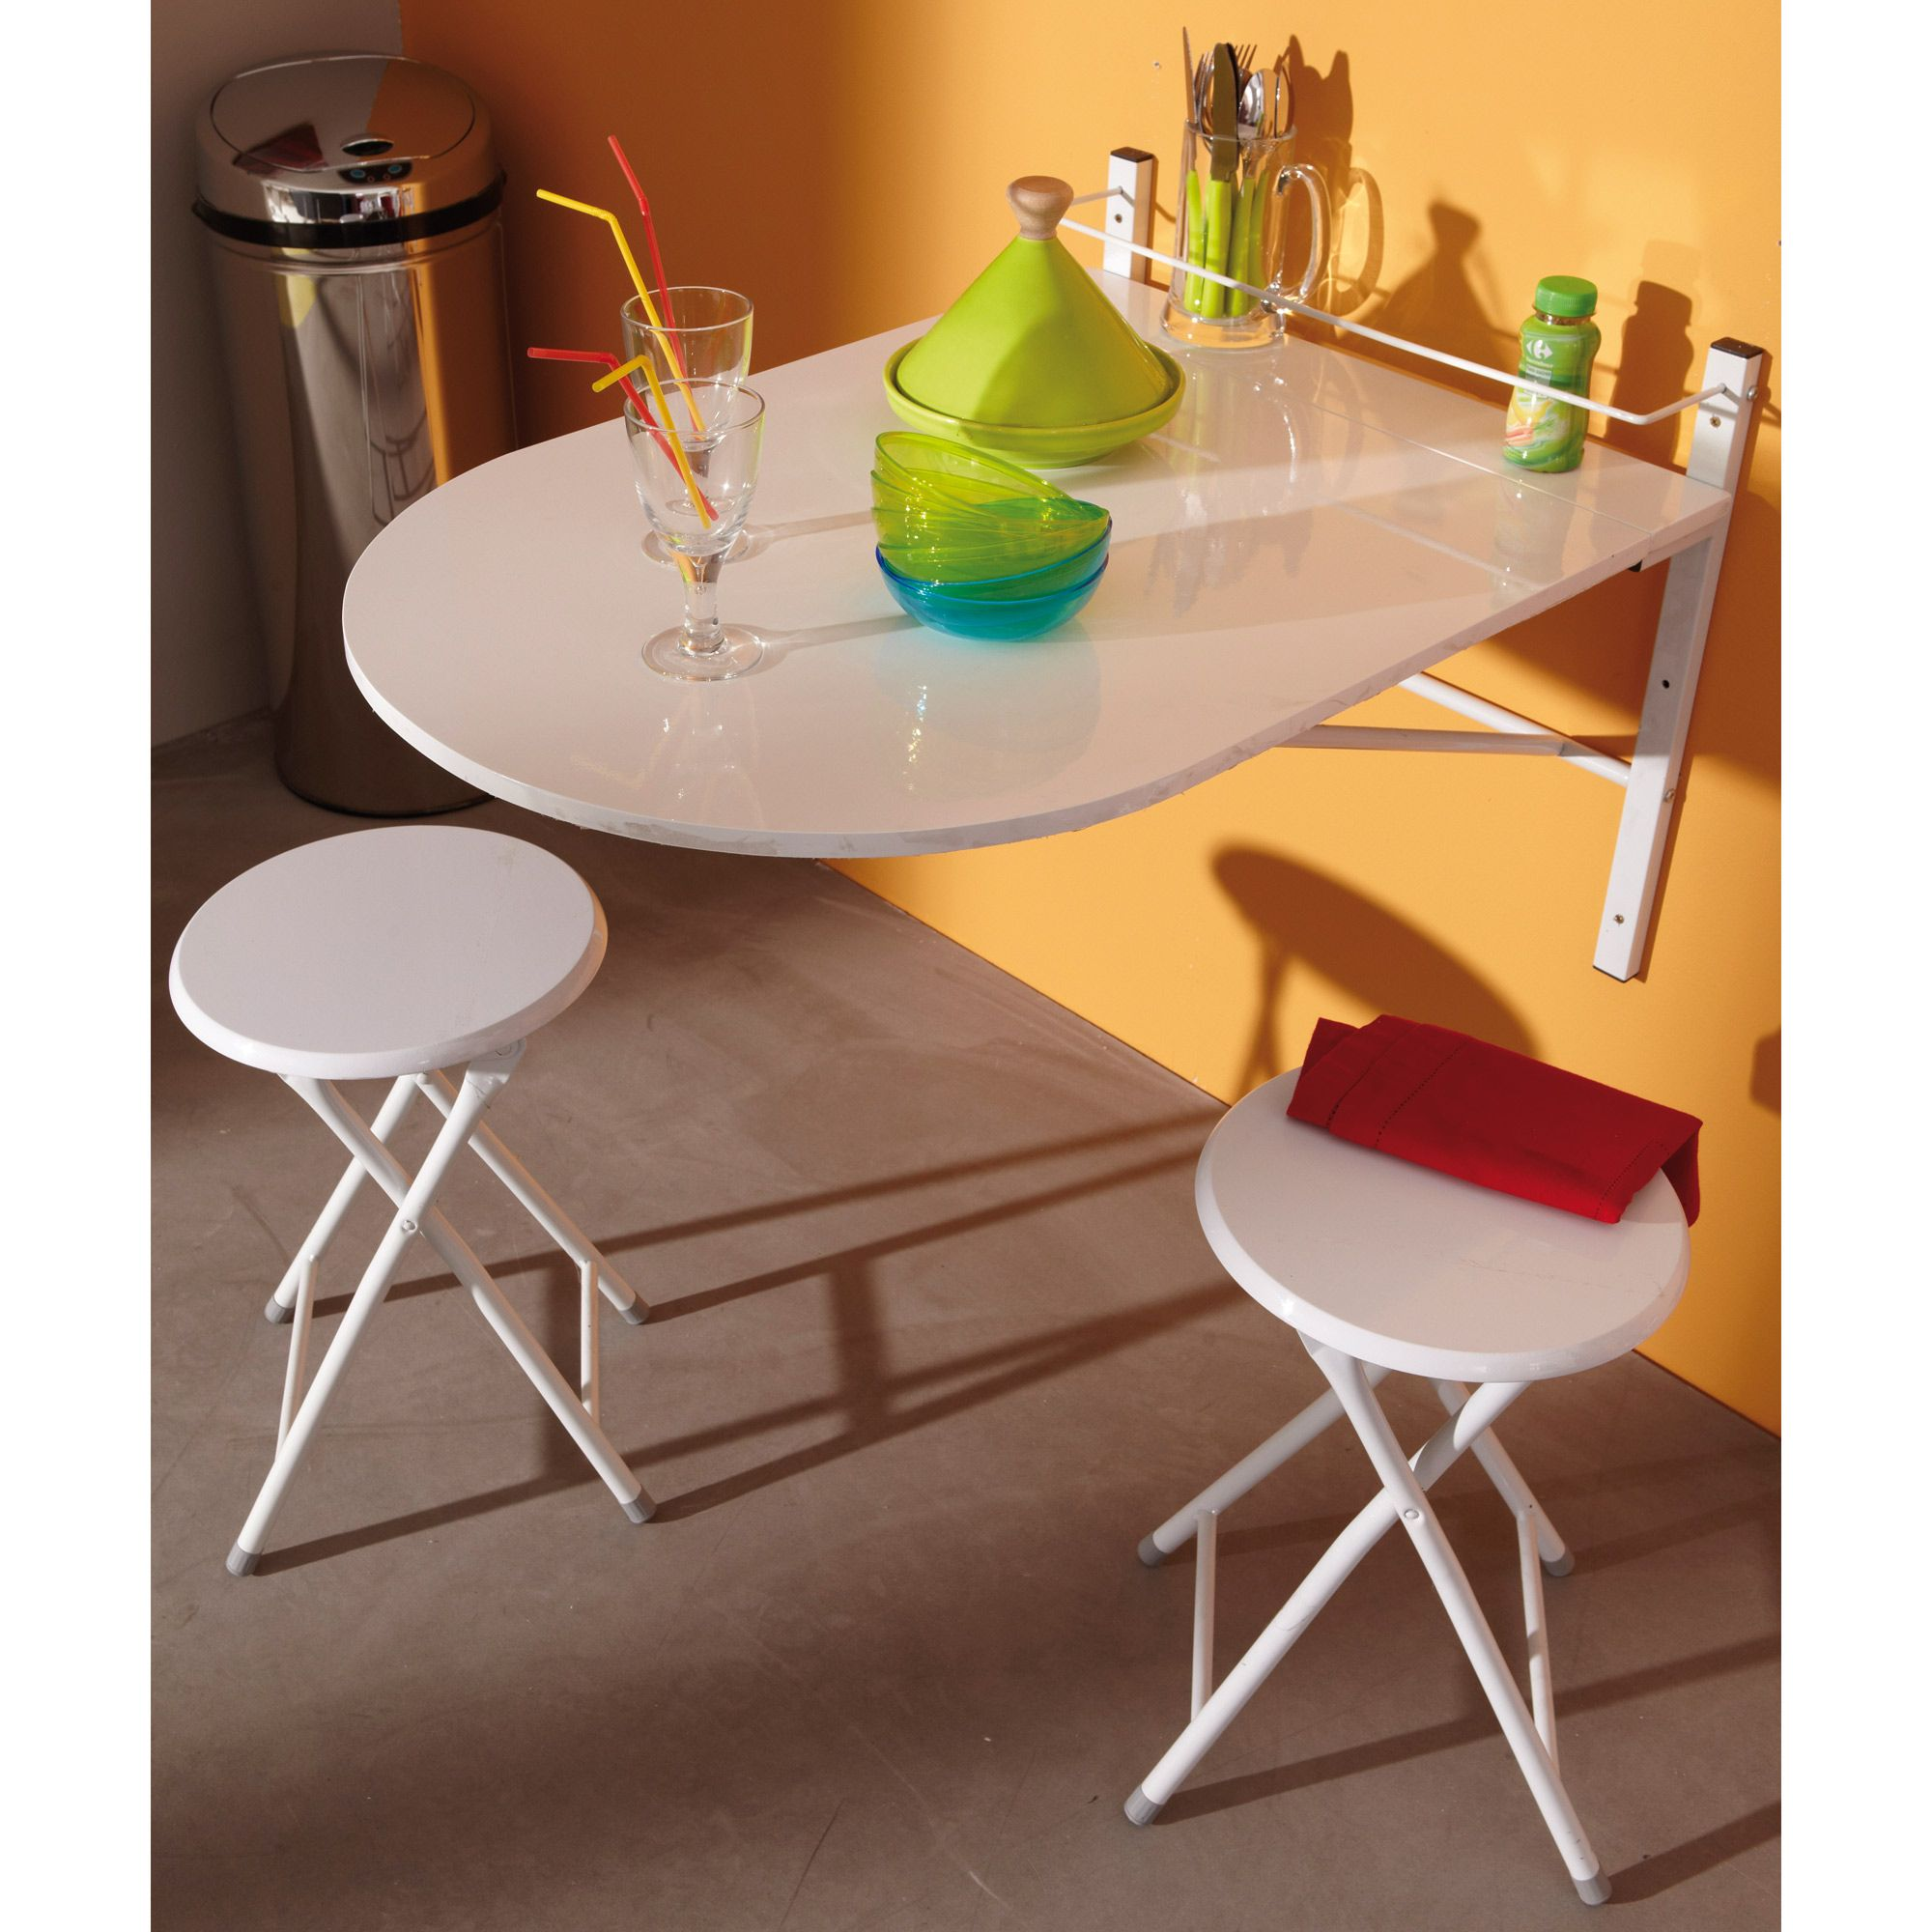 Wall Mounted Folding Table With 2 Folding Chairs White Kitchen